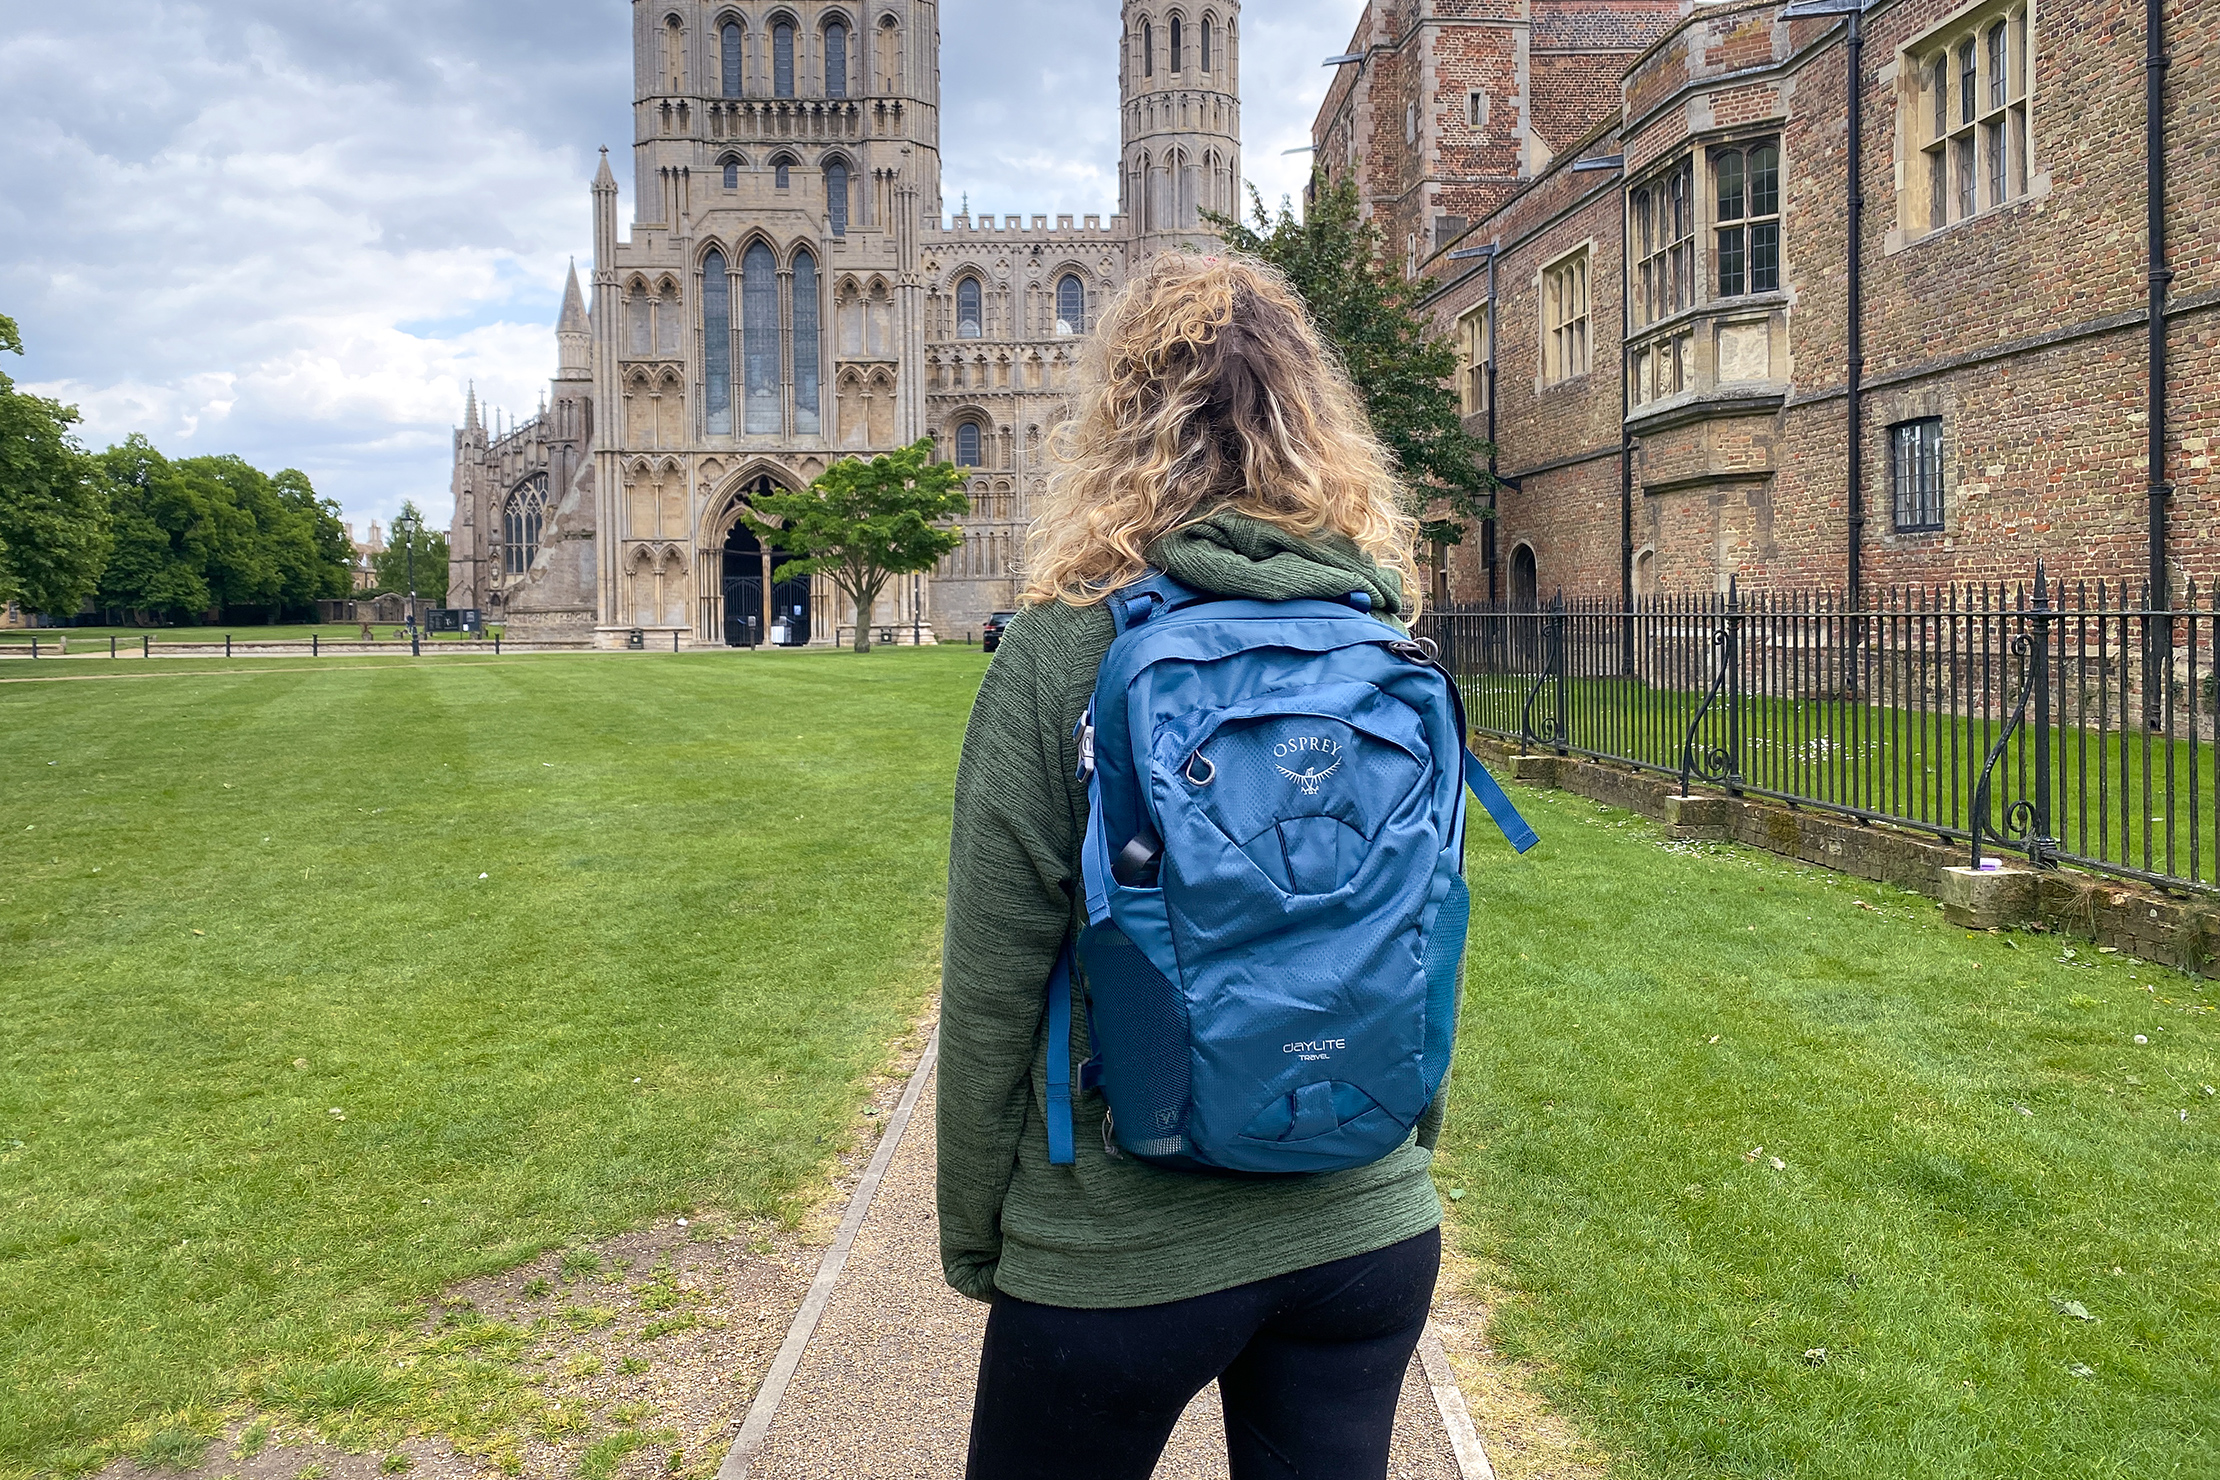 Osprey Daylite Travel Pack In Ely England